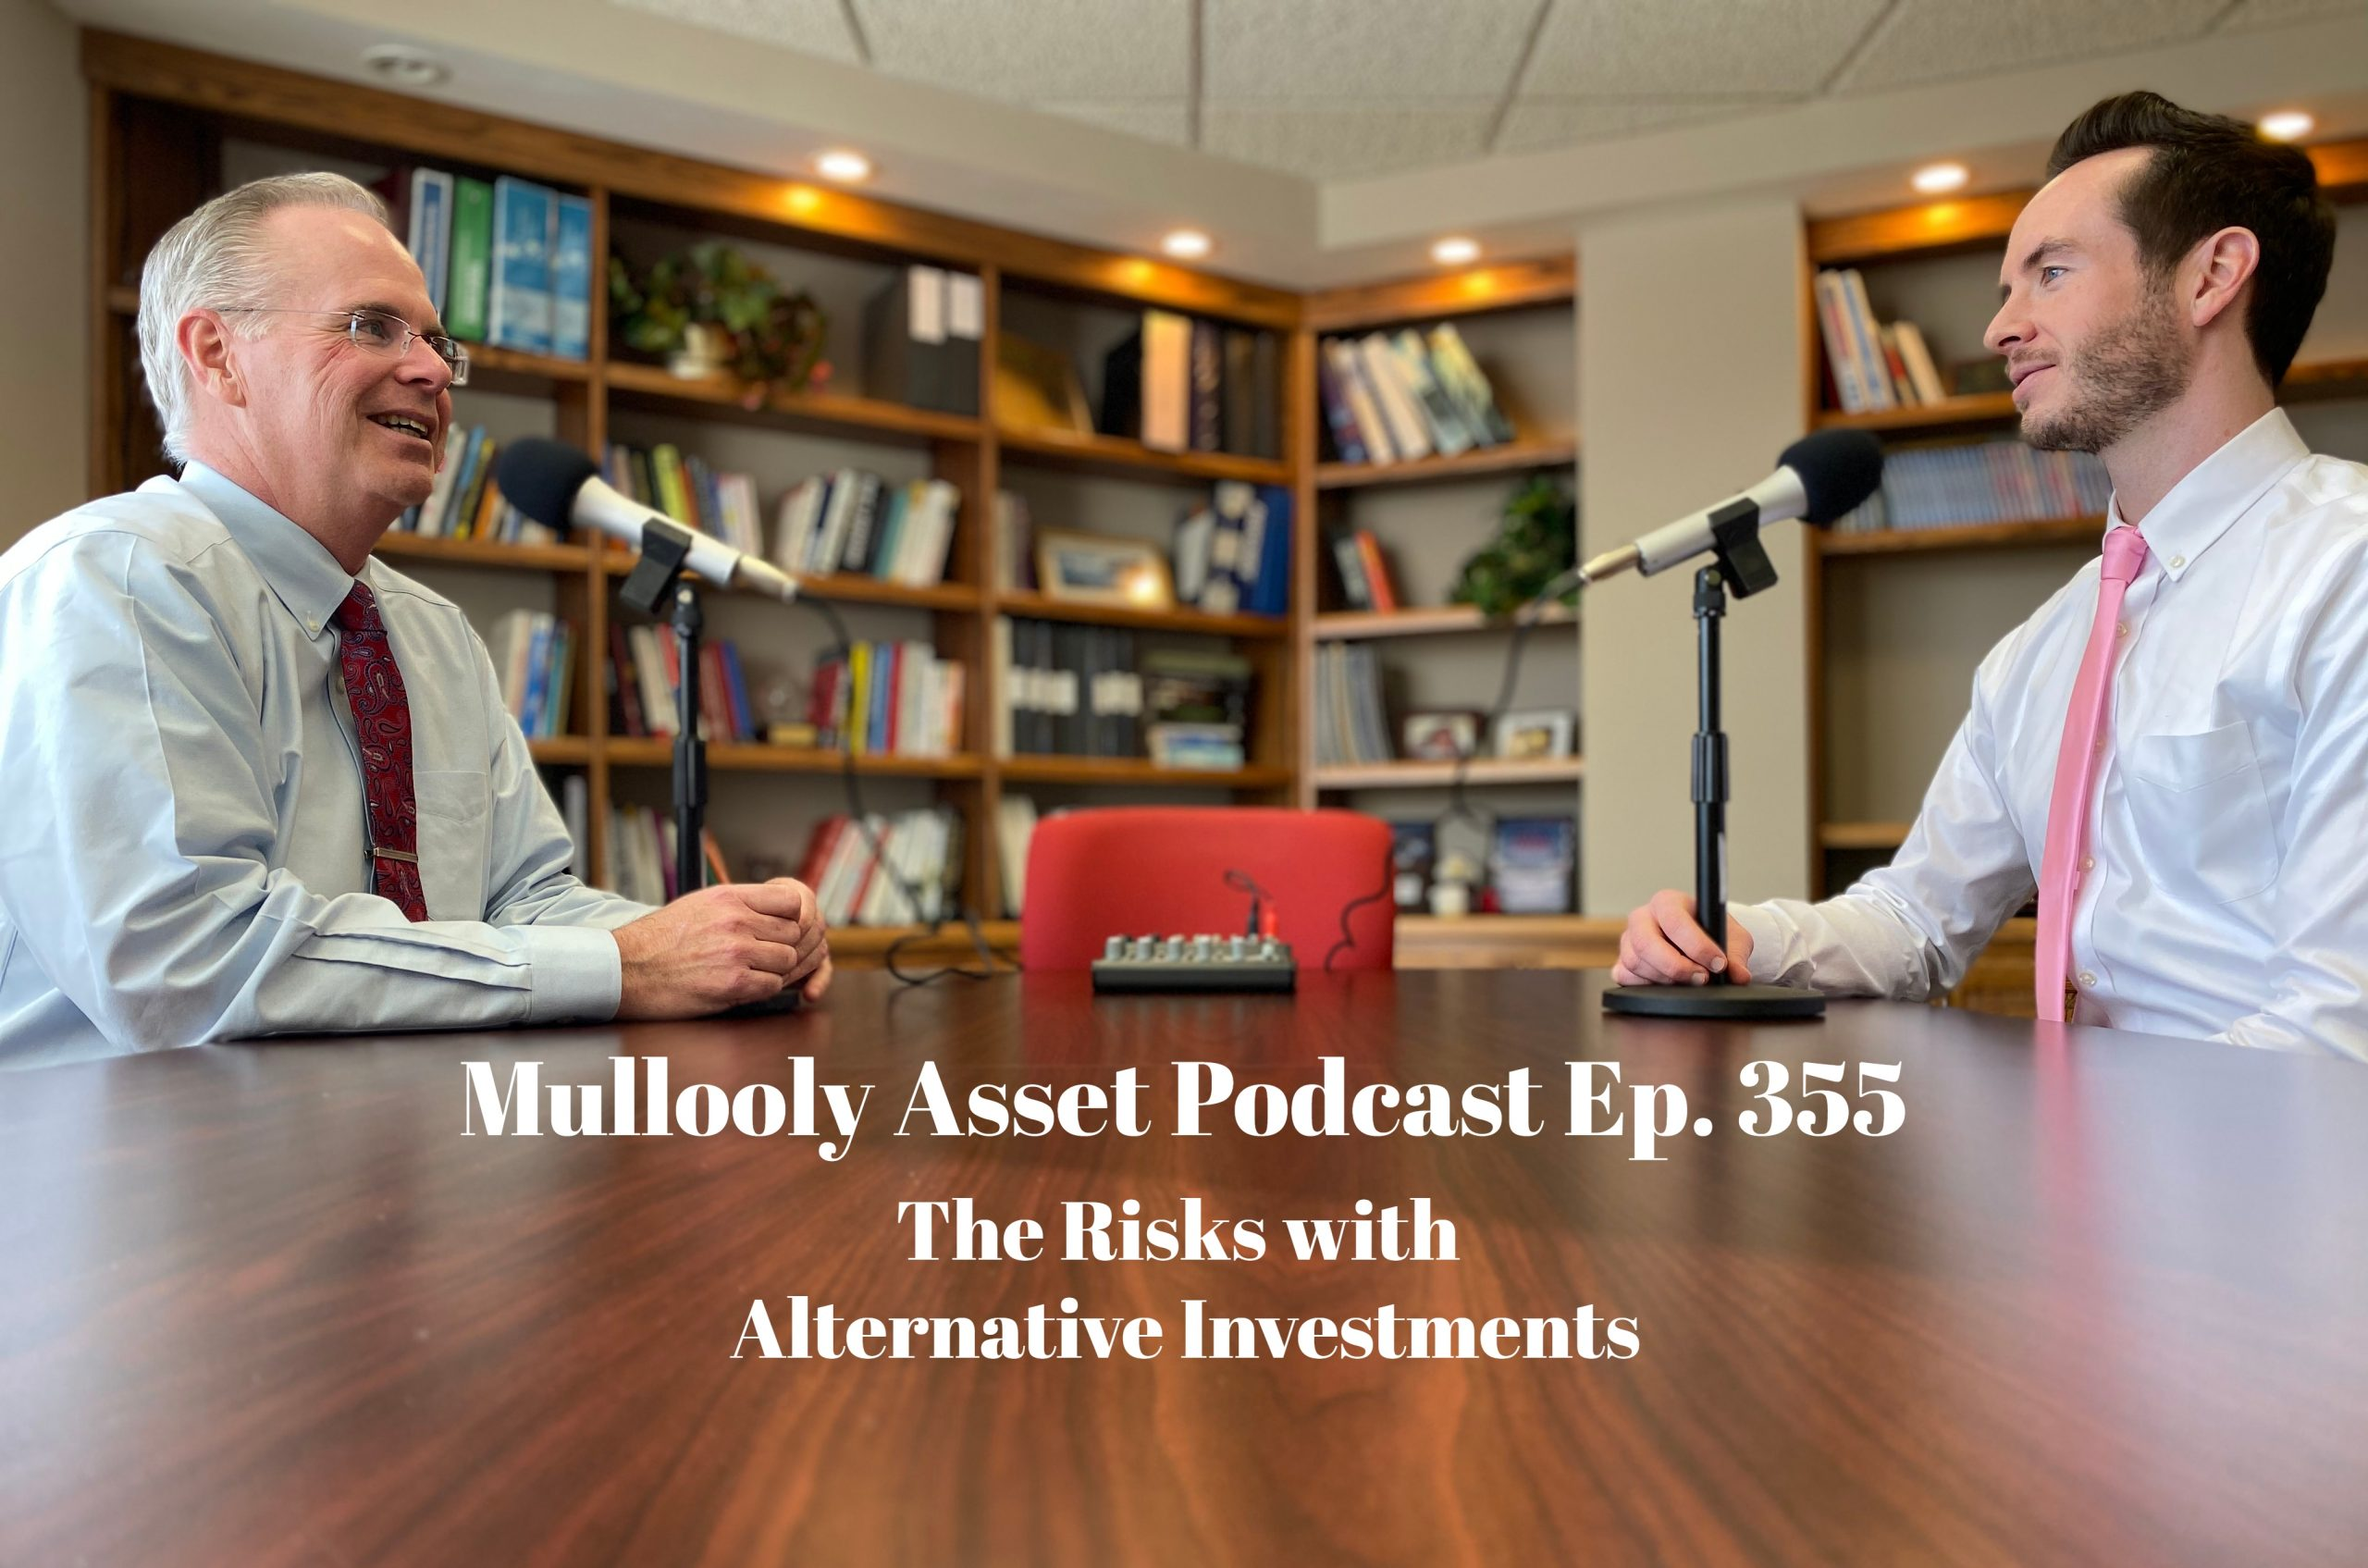 The Risks with Alternative Investments